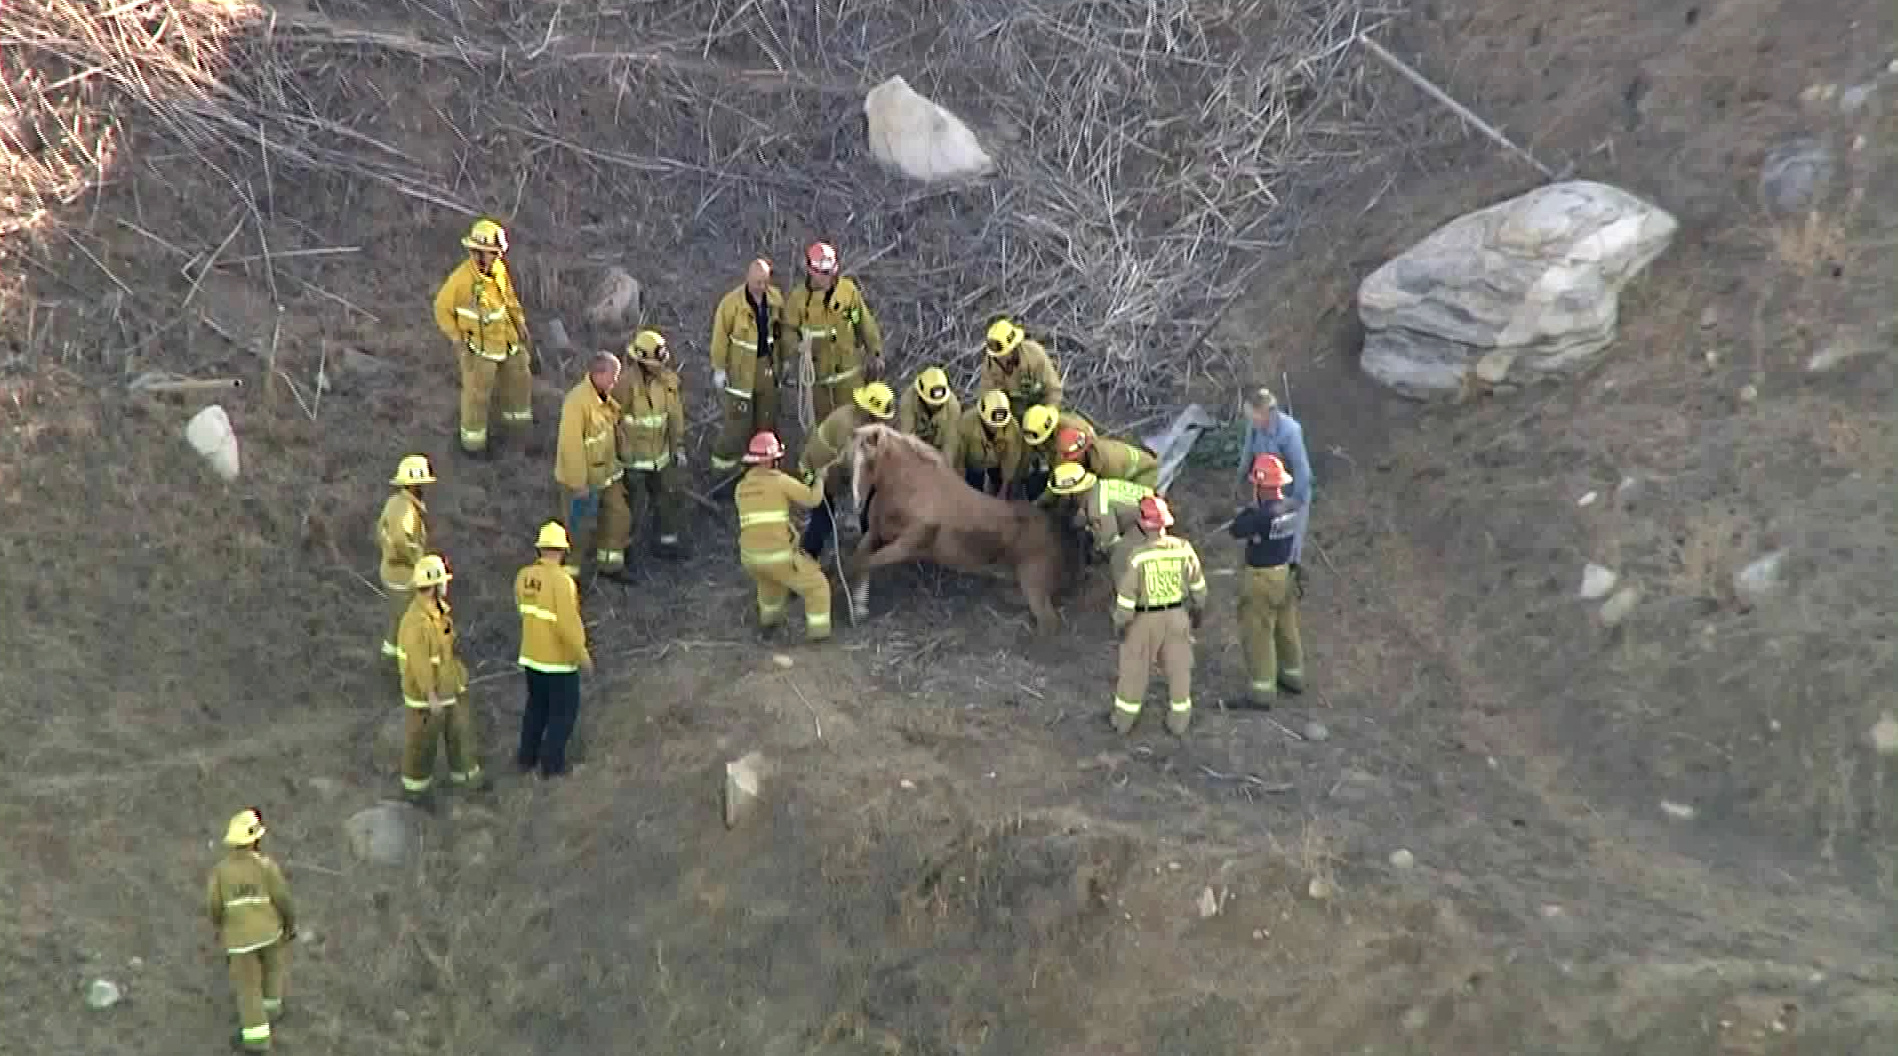 Firefighters work to rescue a horse trapped in a Sunland area hillside on Aug. 9, 2019. (Credit: KTLA)